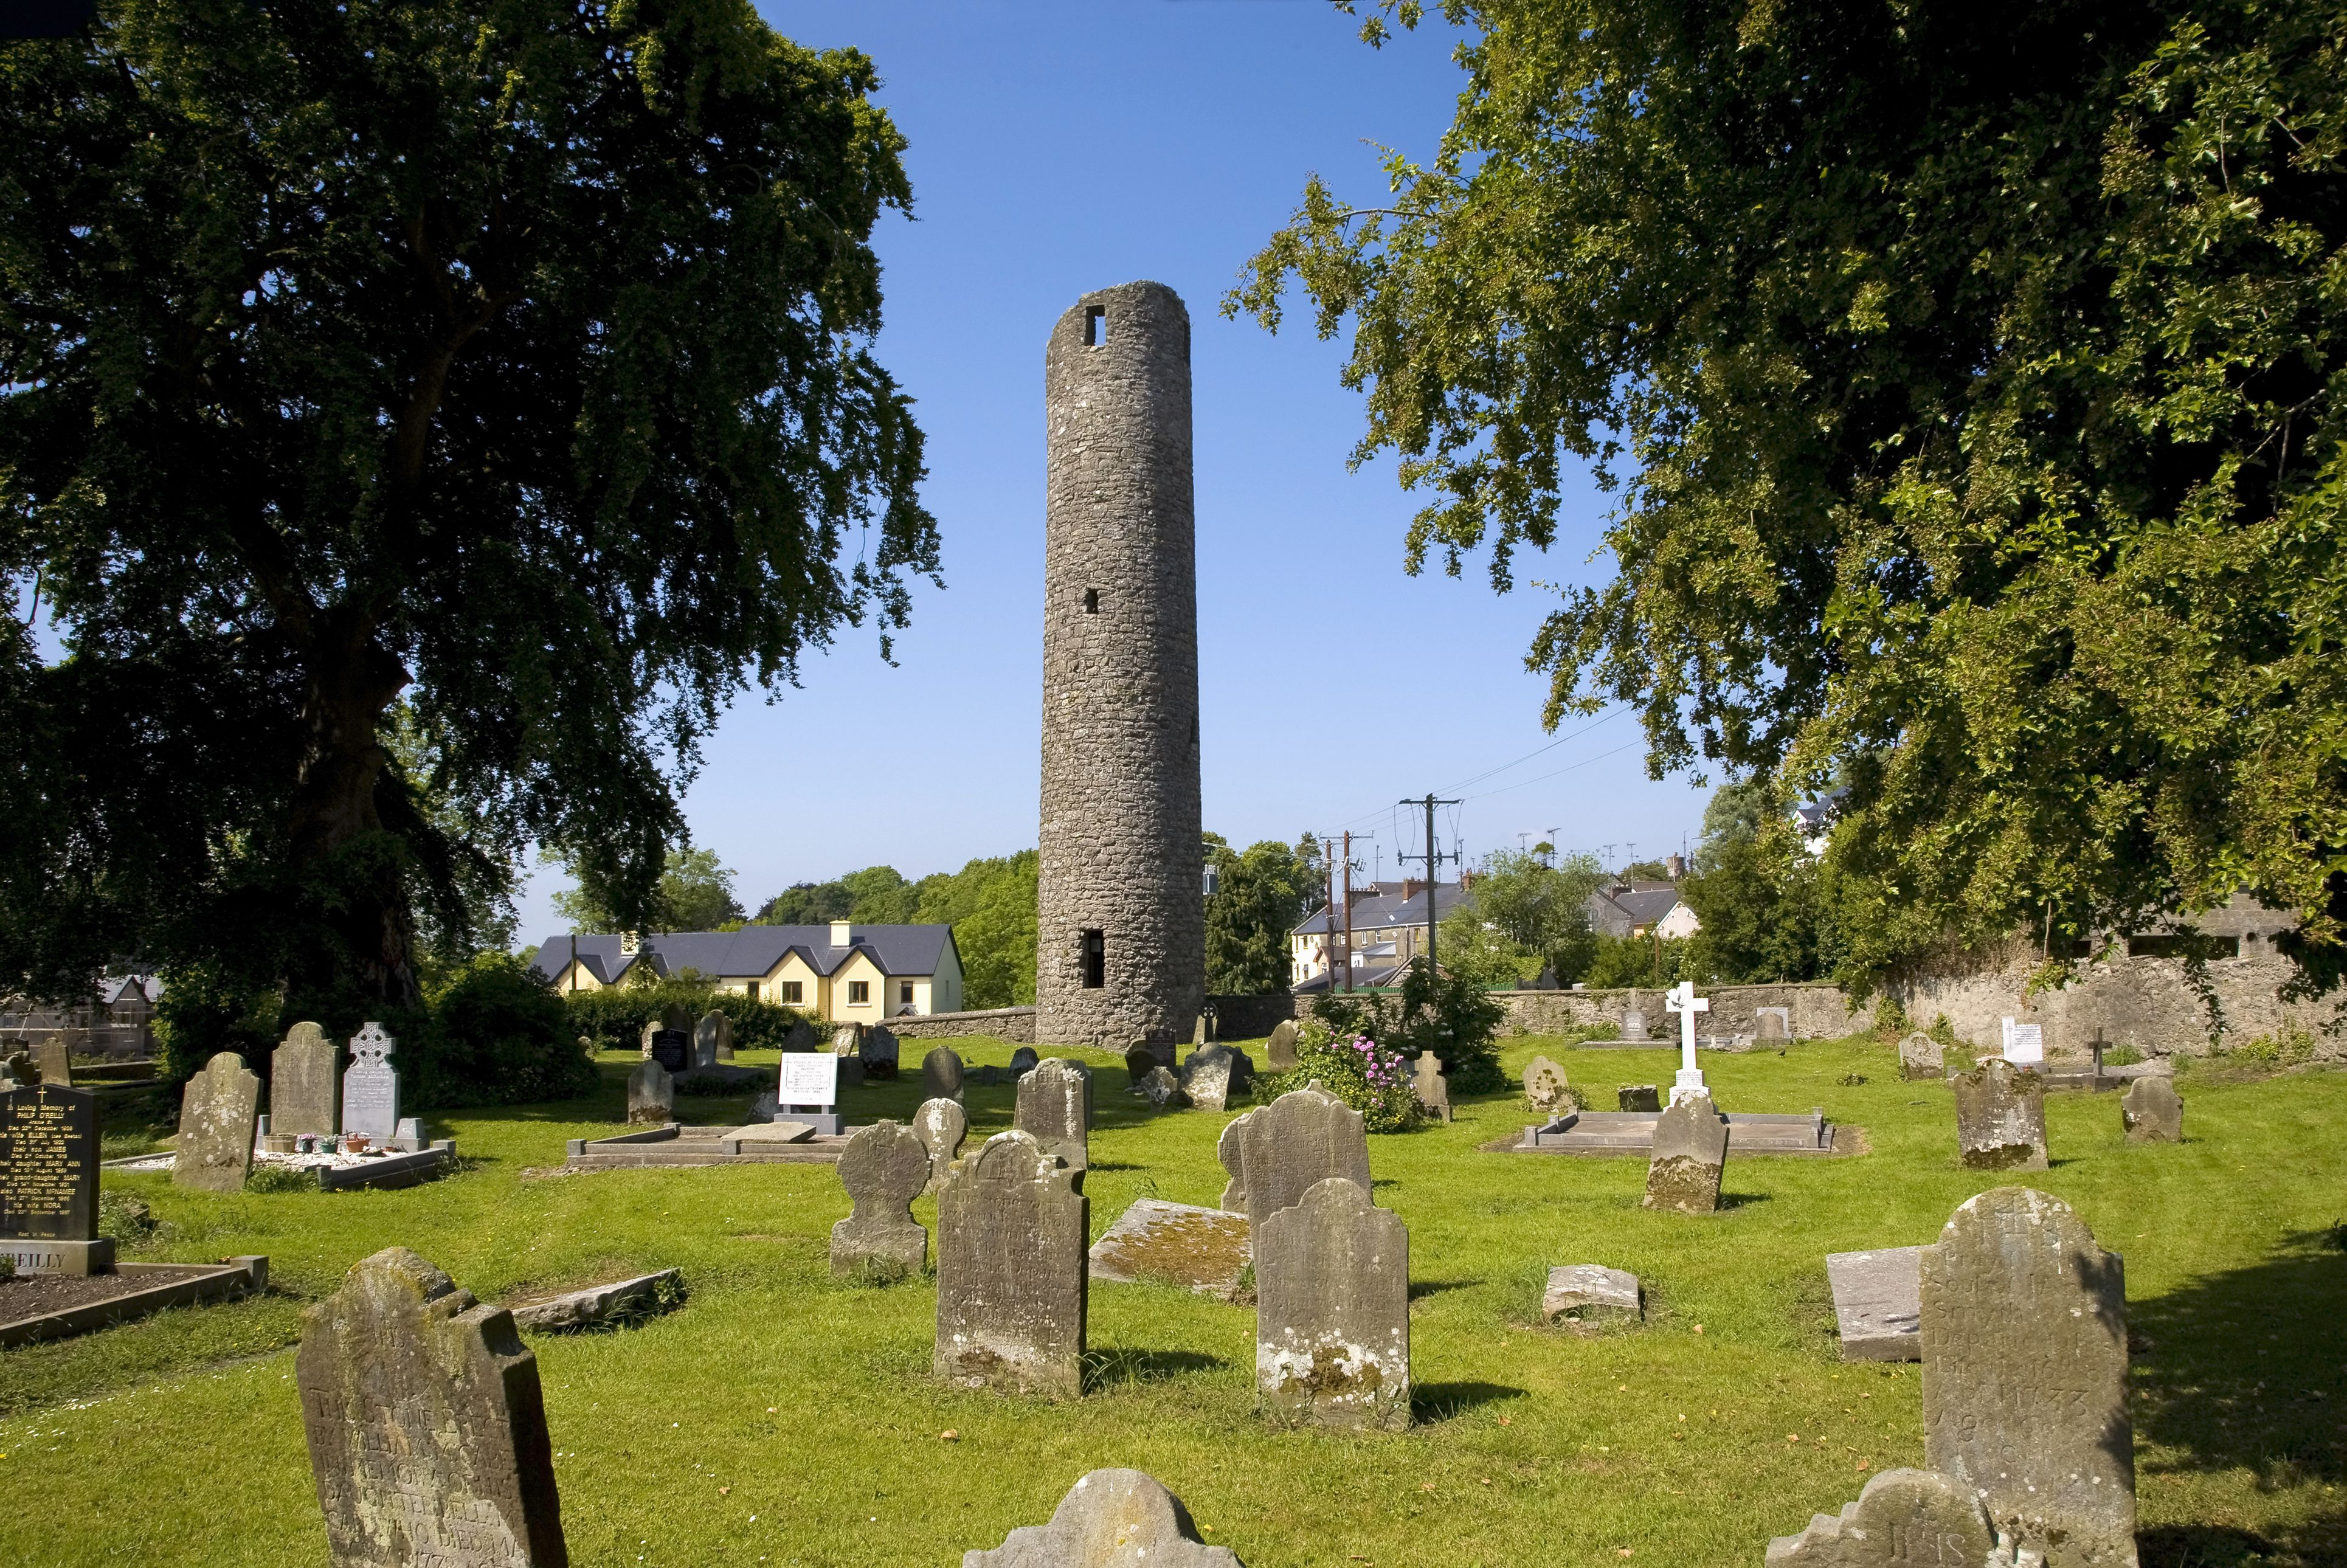 St. Tighearnach's Cemetary and the round tower